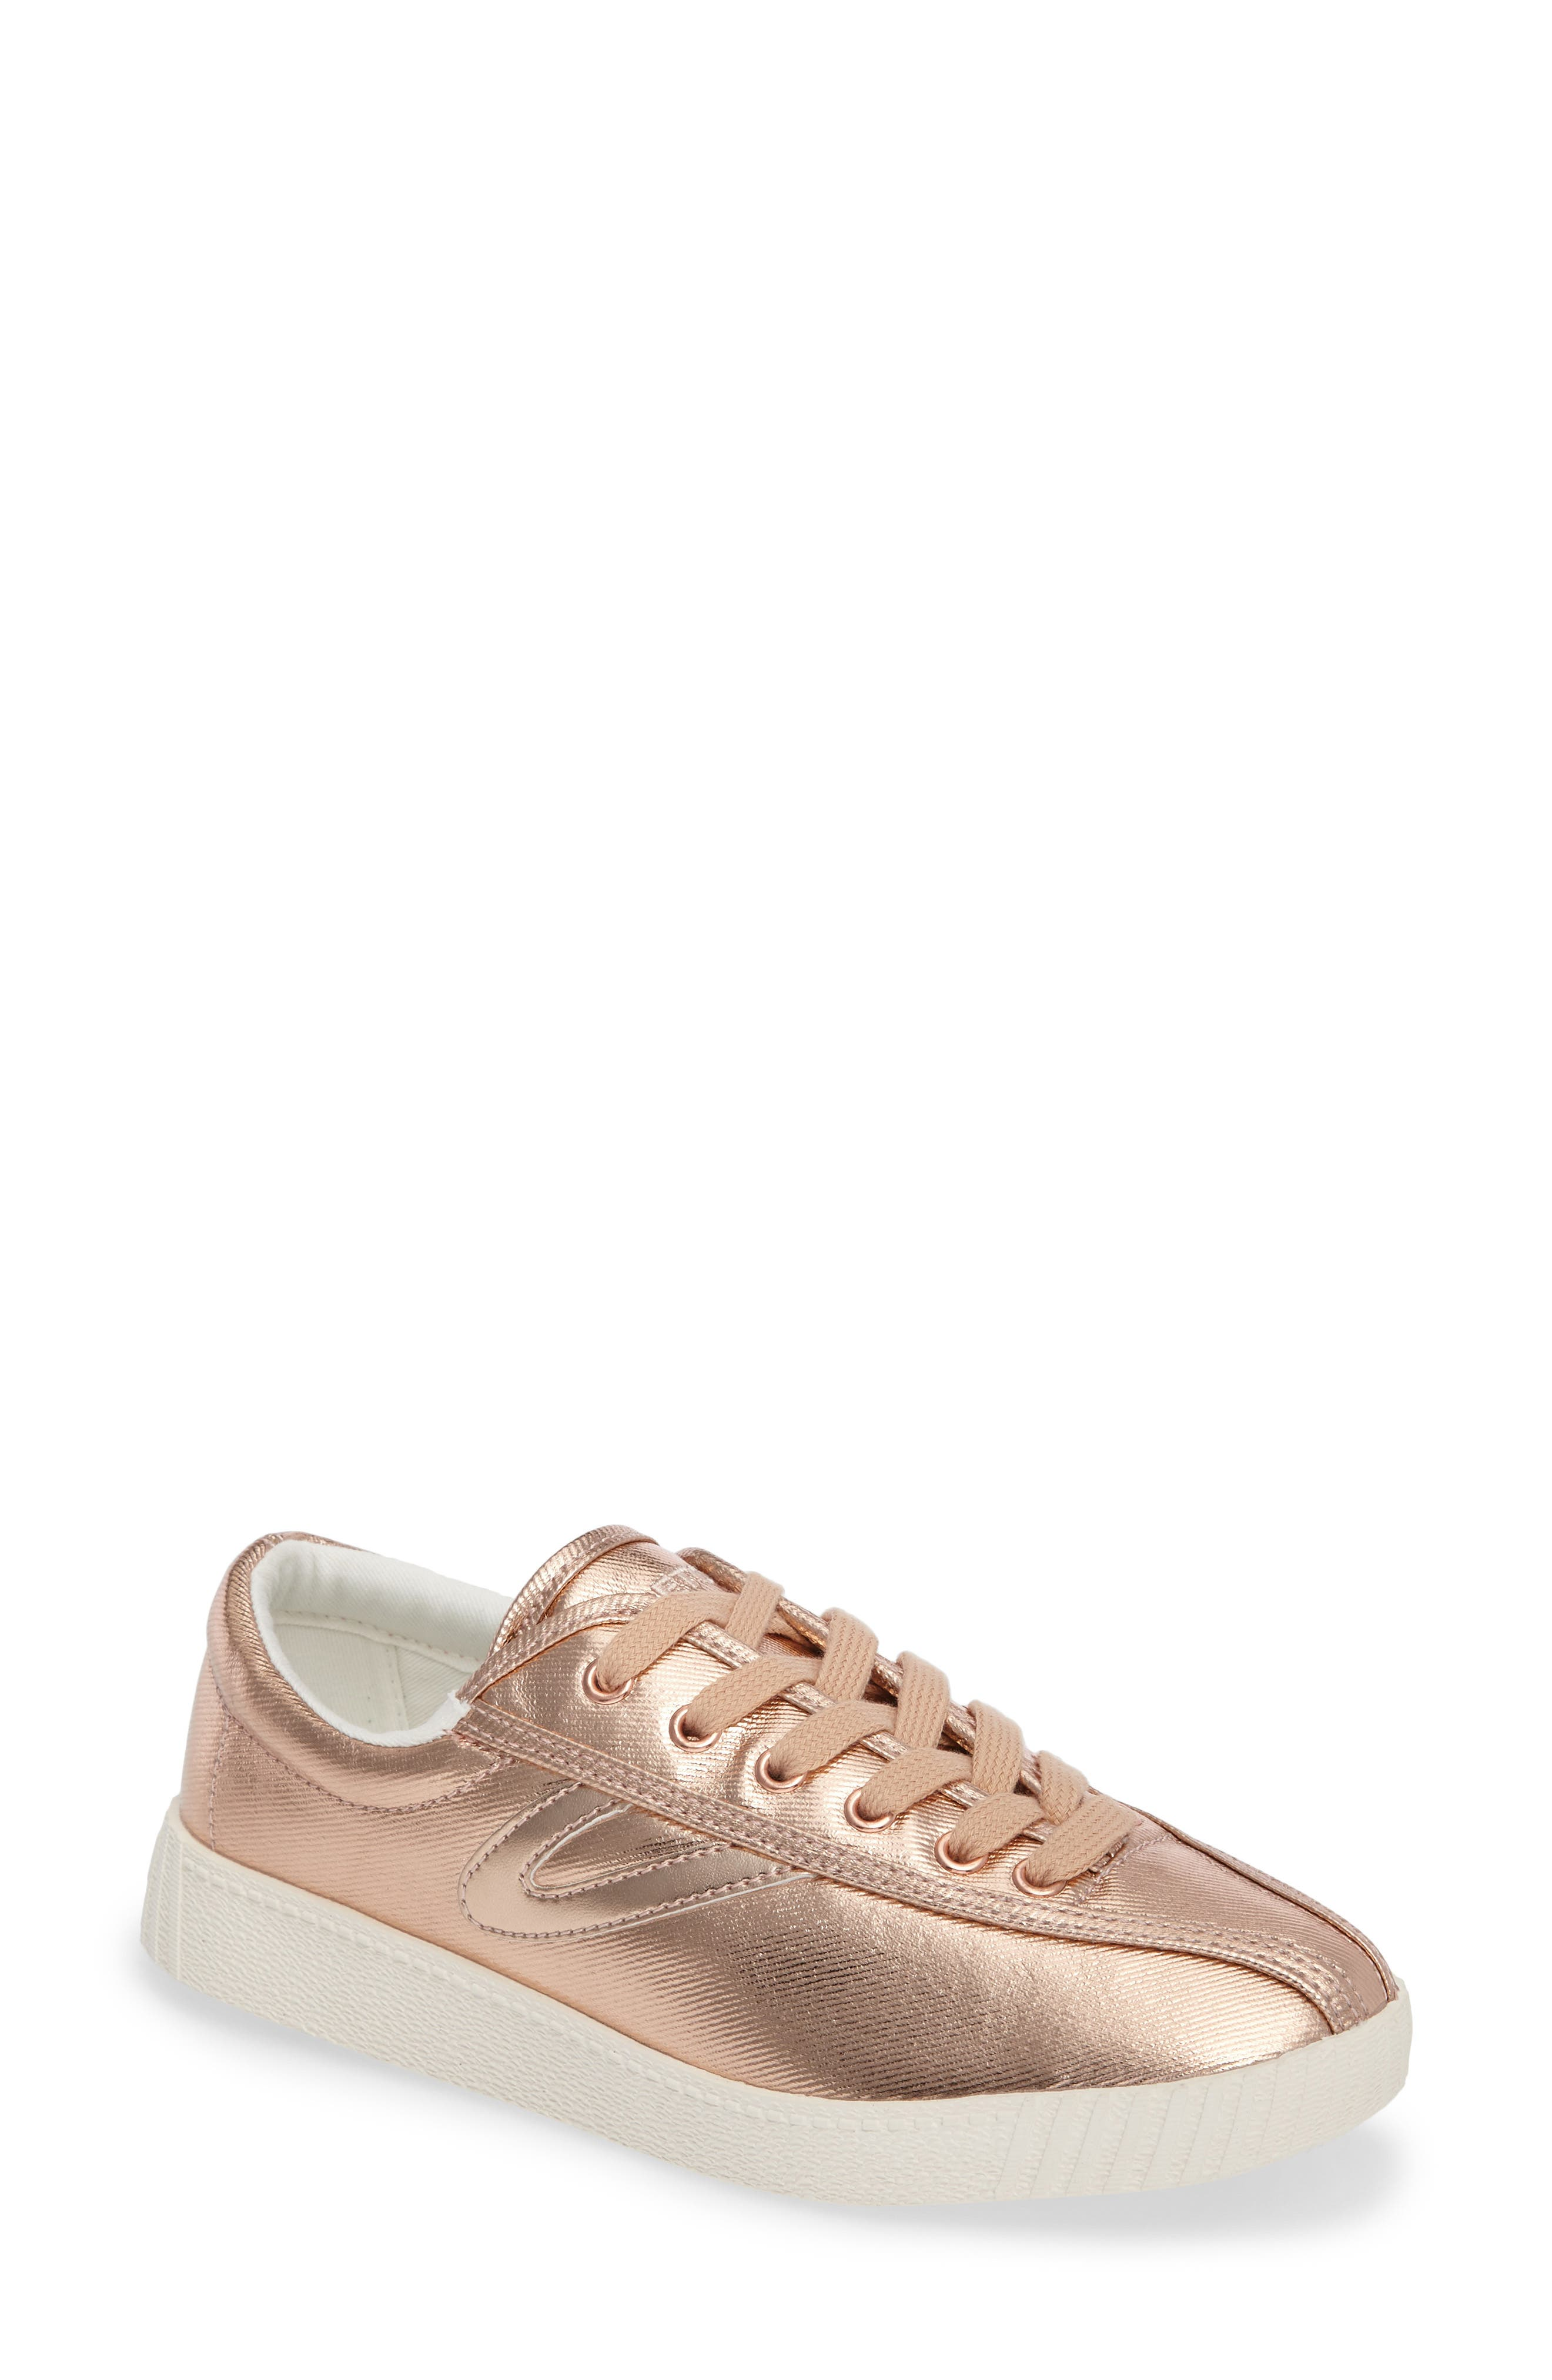 Nylite Plus Sneaker,                         Main,                         color, Rose Gold/ Rose Gold